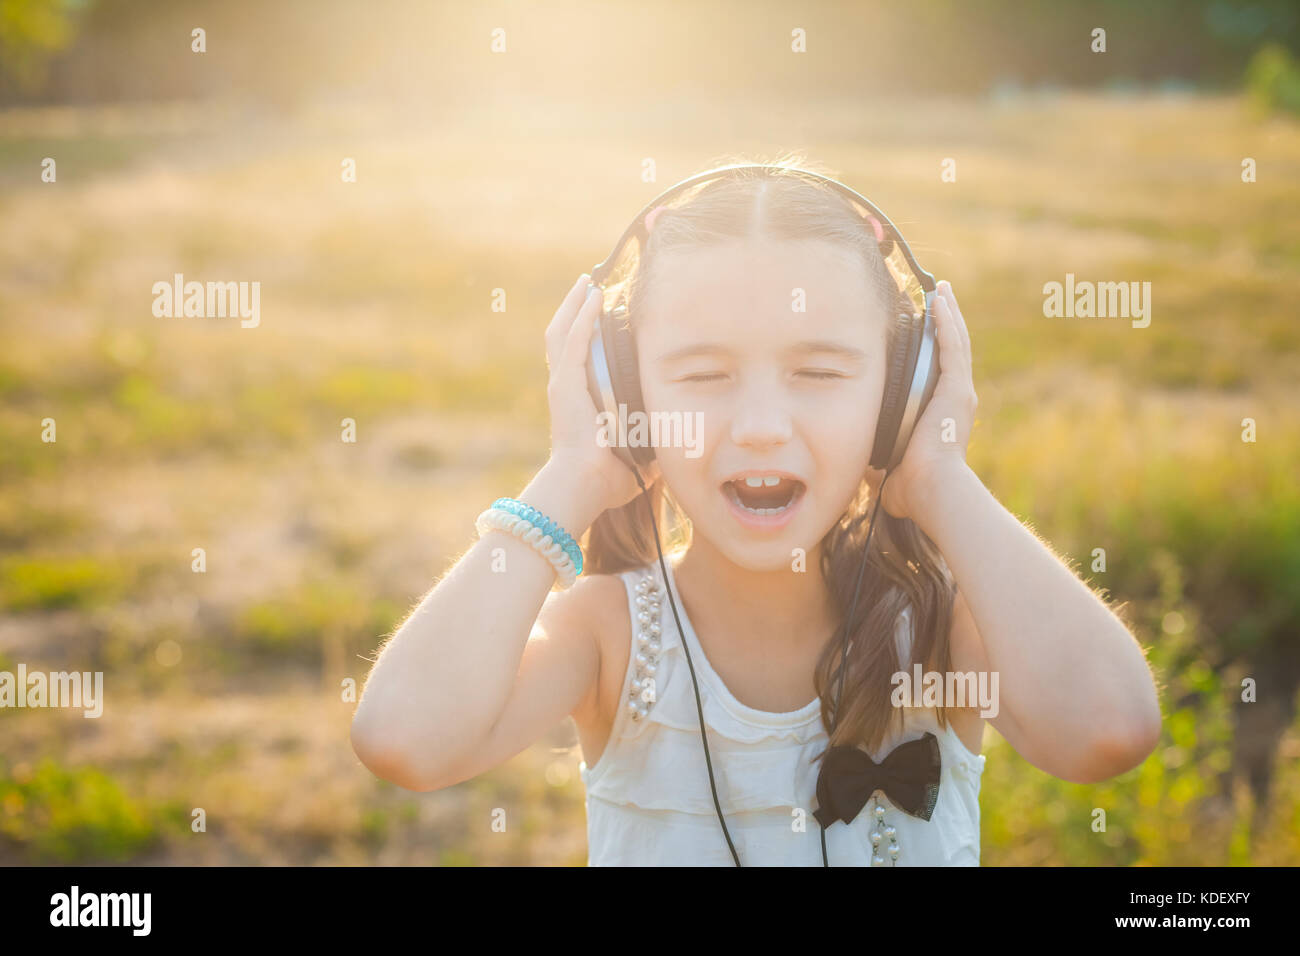 Little girl listening music with headphones - Stock Image